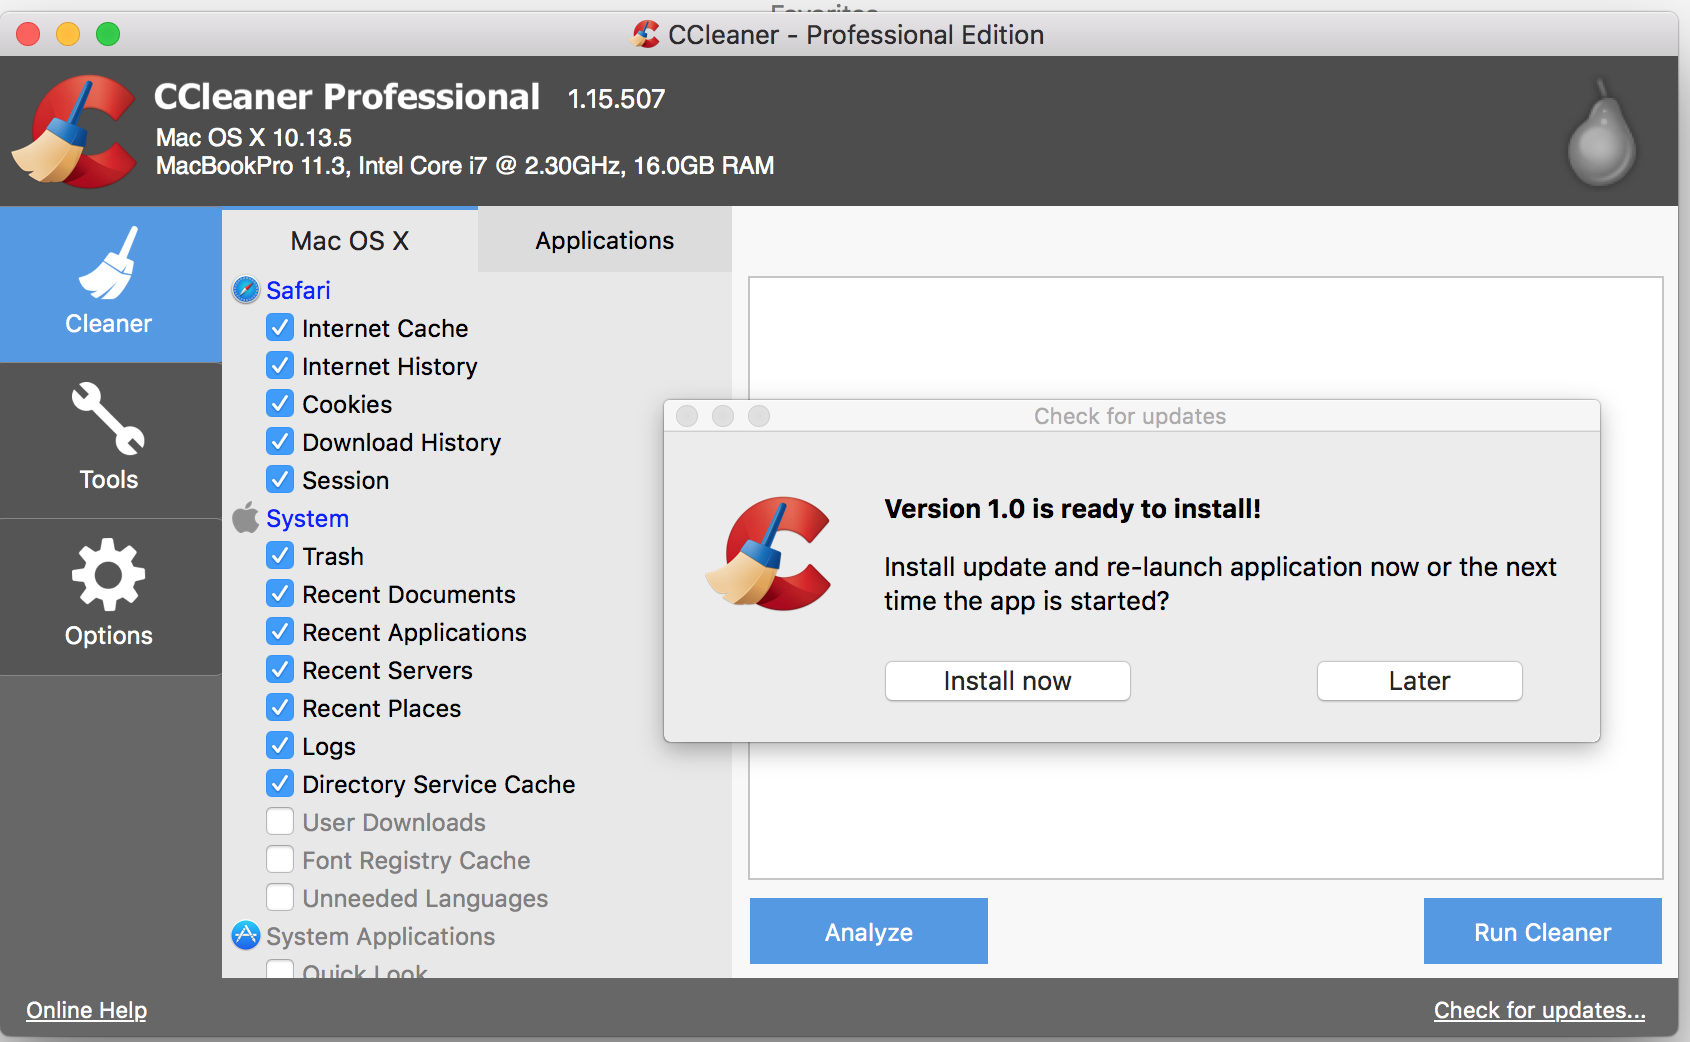 CCleaner Pro 5.65.7632 Crack With License Key Latest Version Free Download(2020)